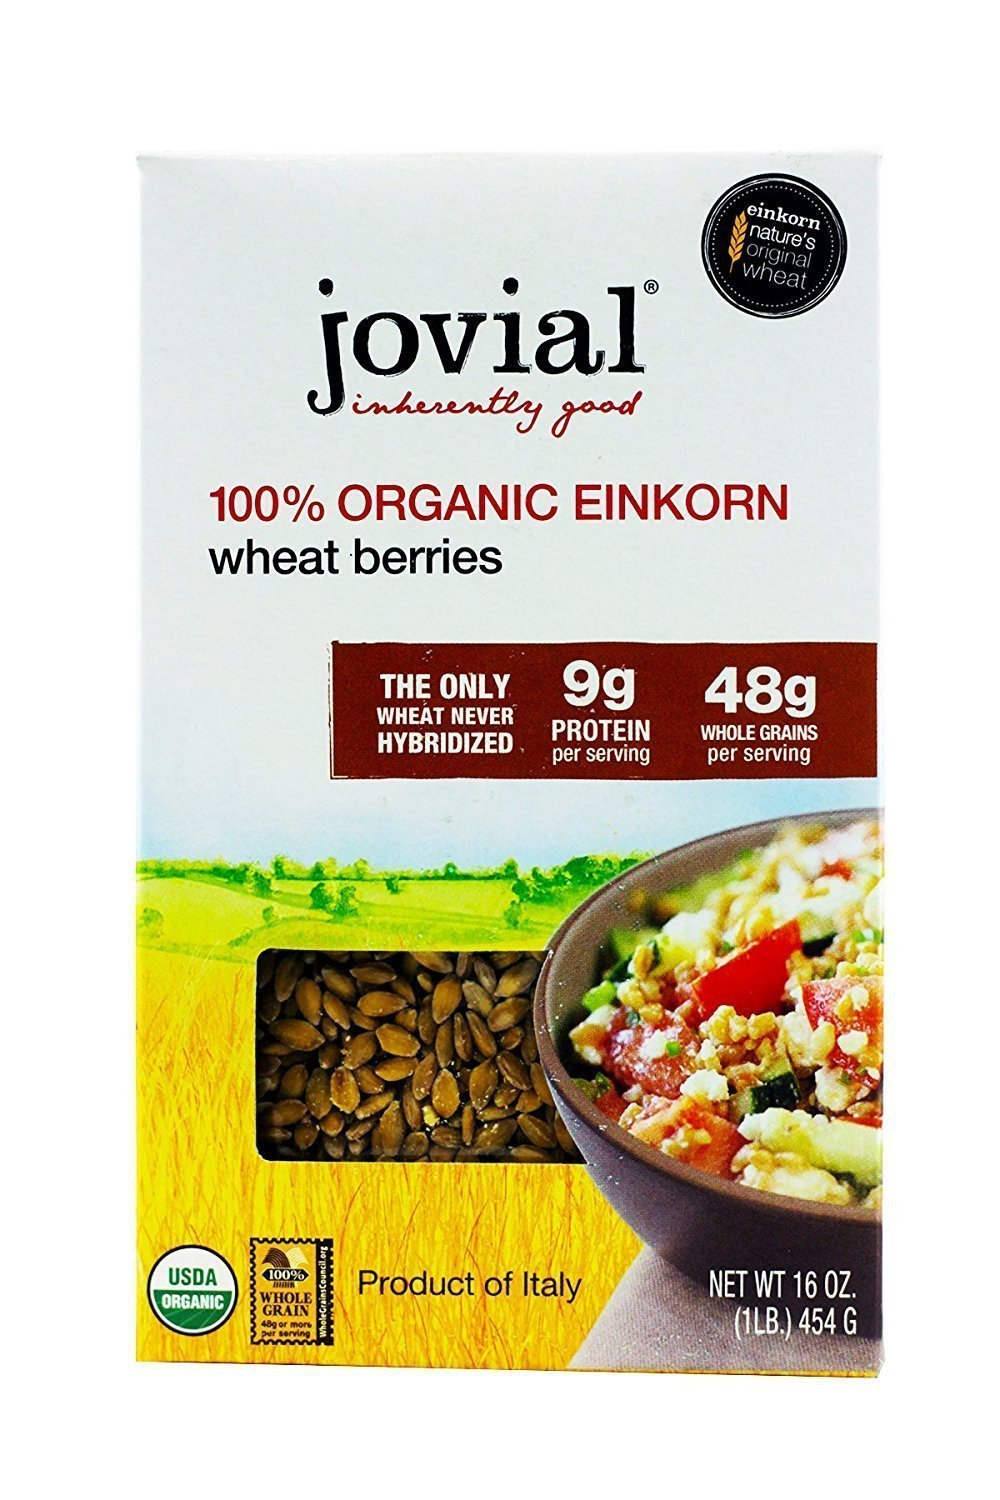 Jovial Einkorn Wheat Berries   100% Organic Einkorn Wheat Berries   High Protein   Non-GMO   USDA Certified Organic   Product of Italy   16 oz (3 Pack)